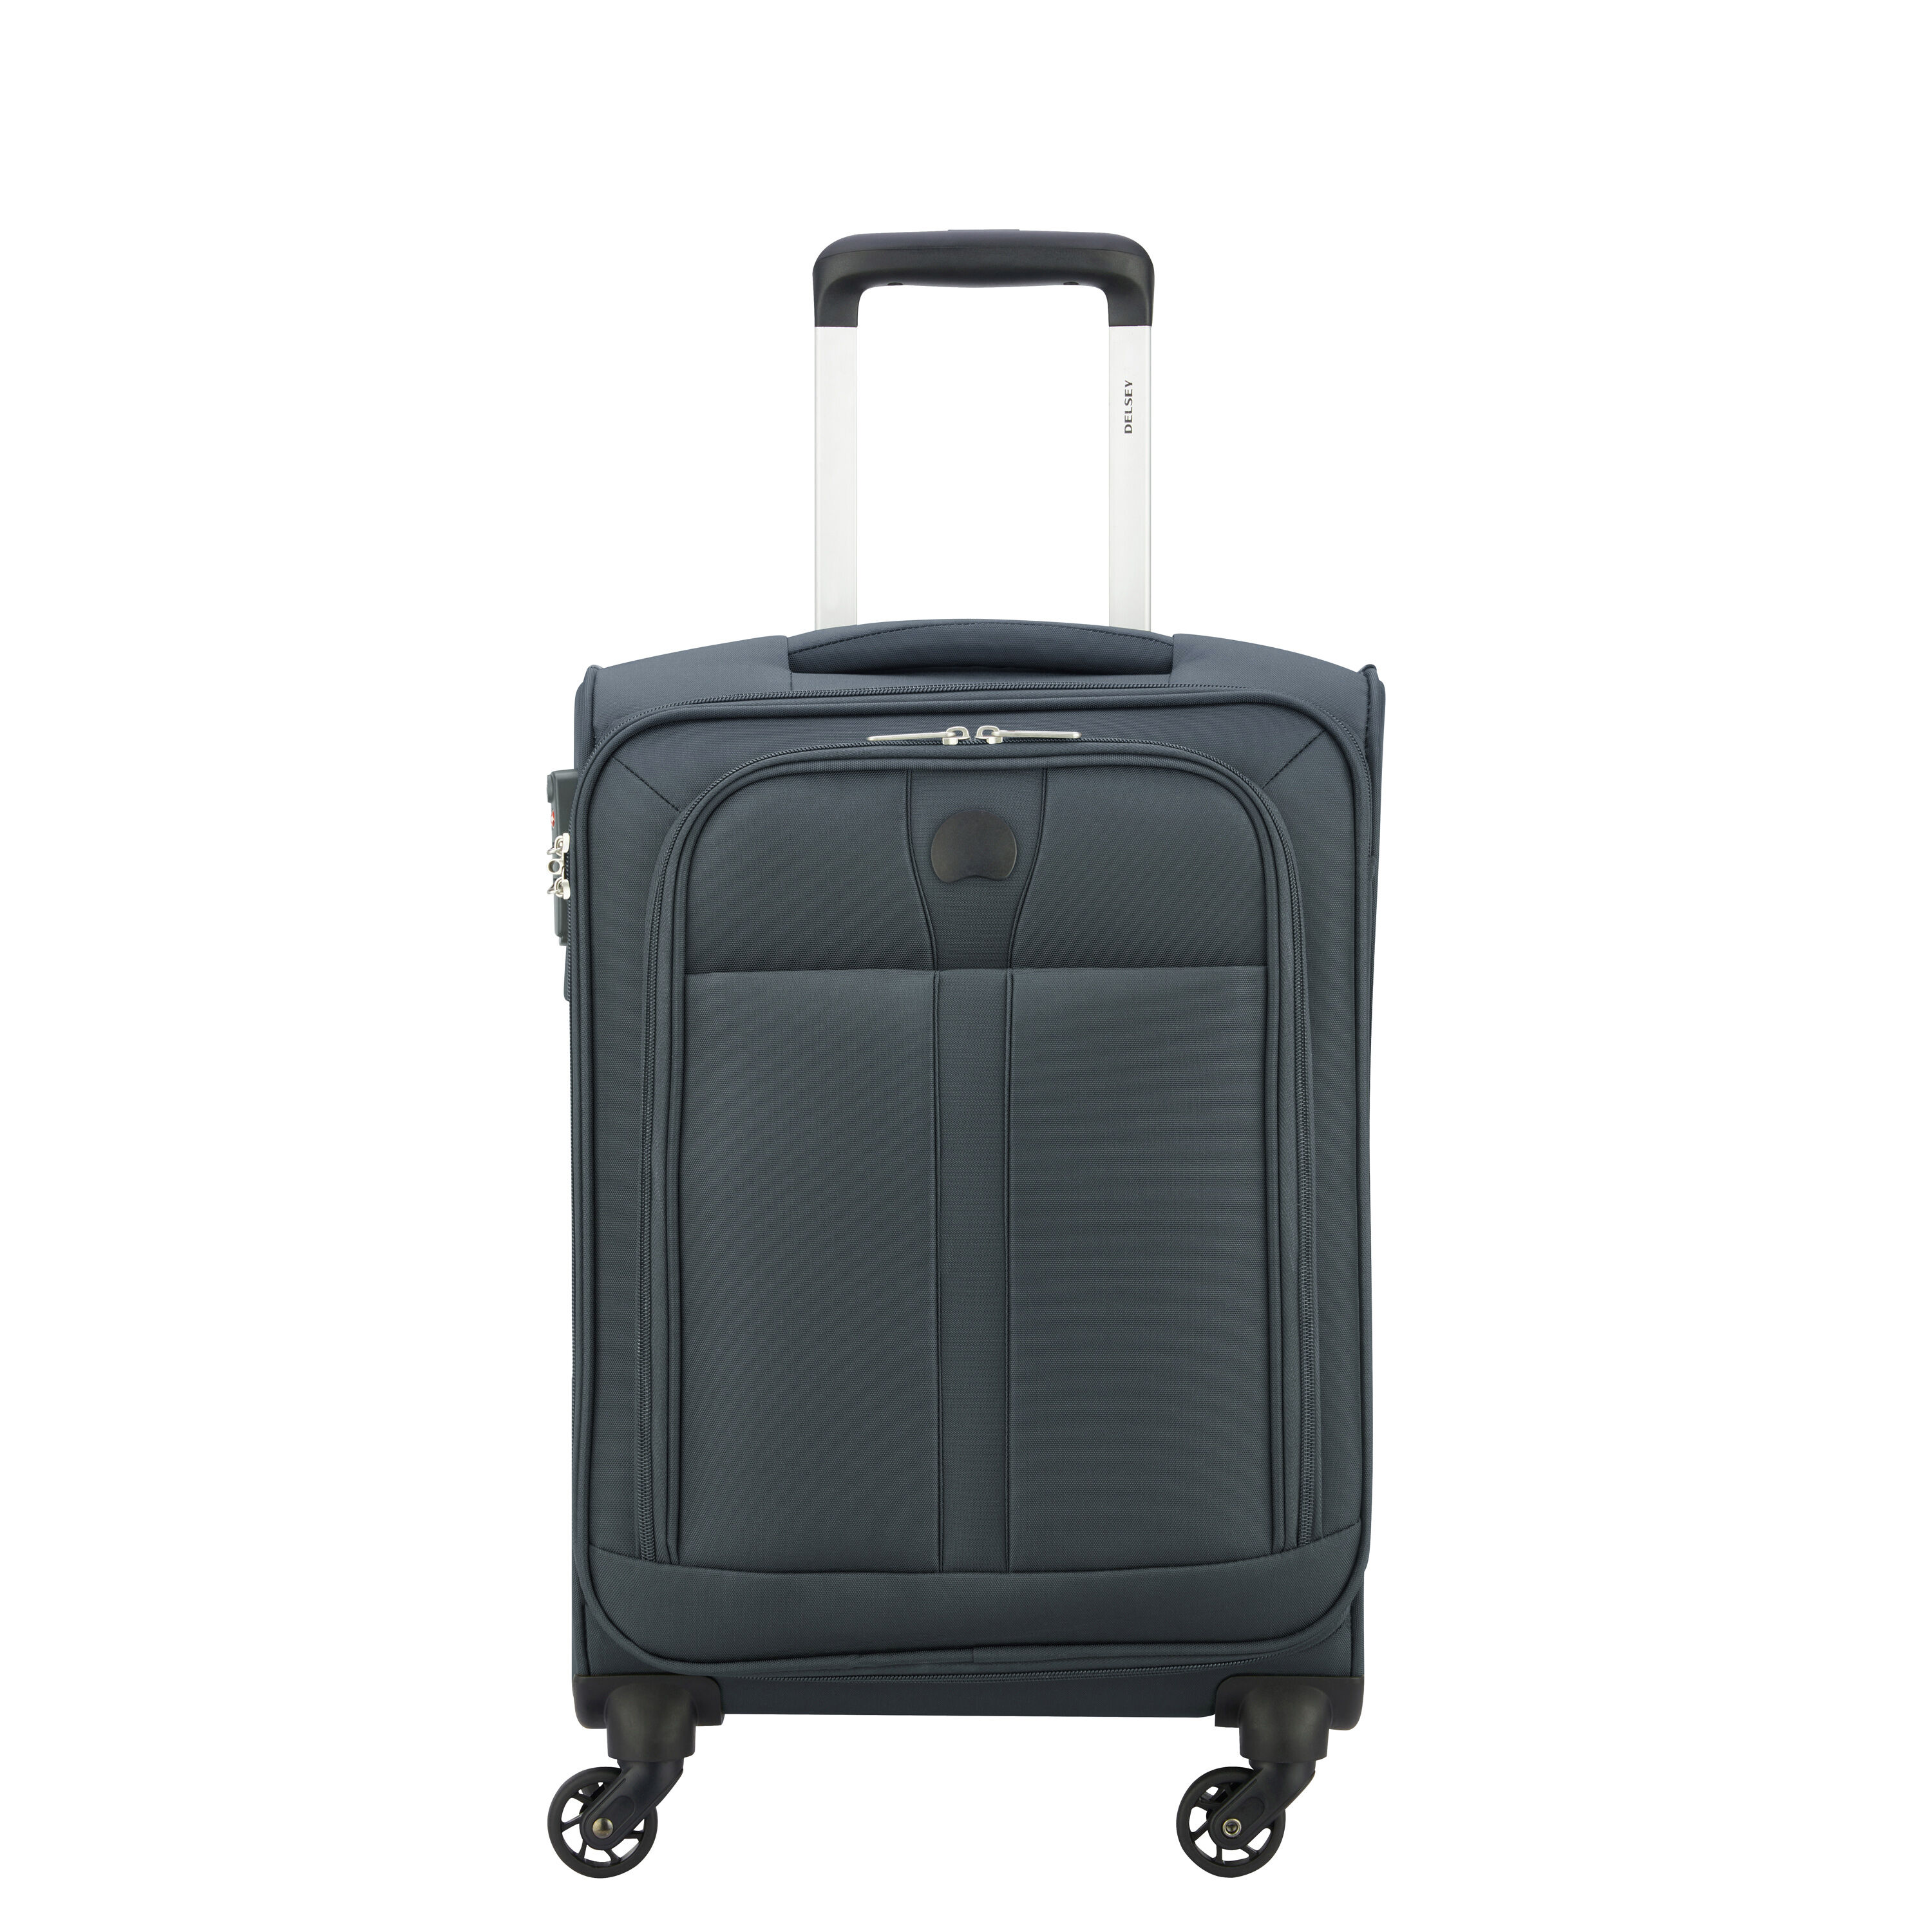 Delsey Pluggage Valise 4 roues anthracite 78 cm R5llGZim5I